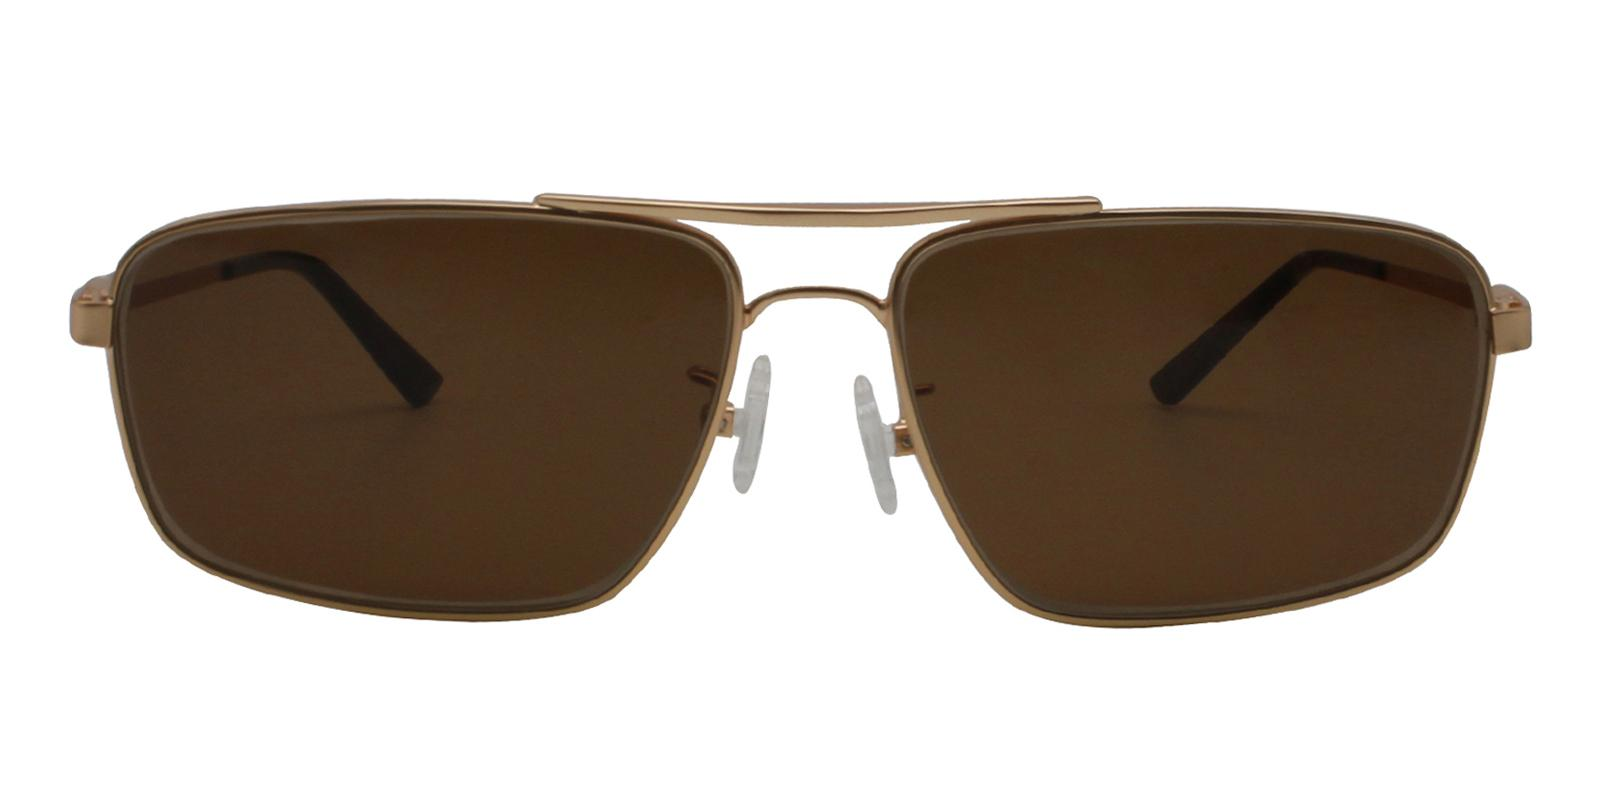 Ethan Gold Metal NosePads , Sunglasses Frames from ABBE Glasses